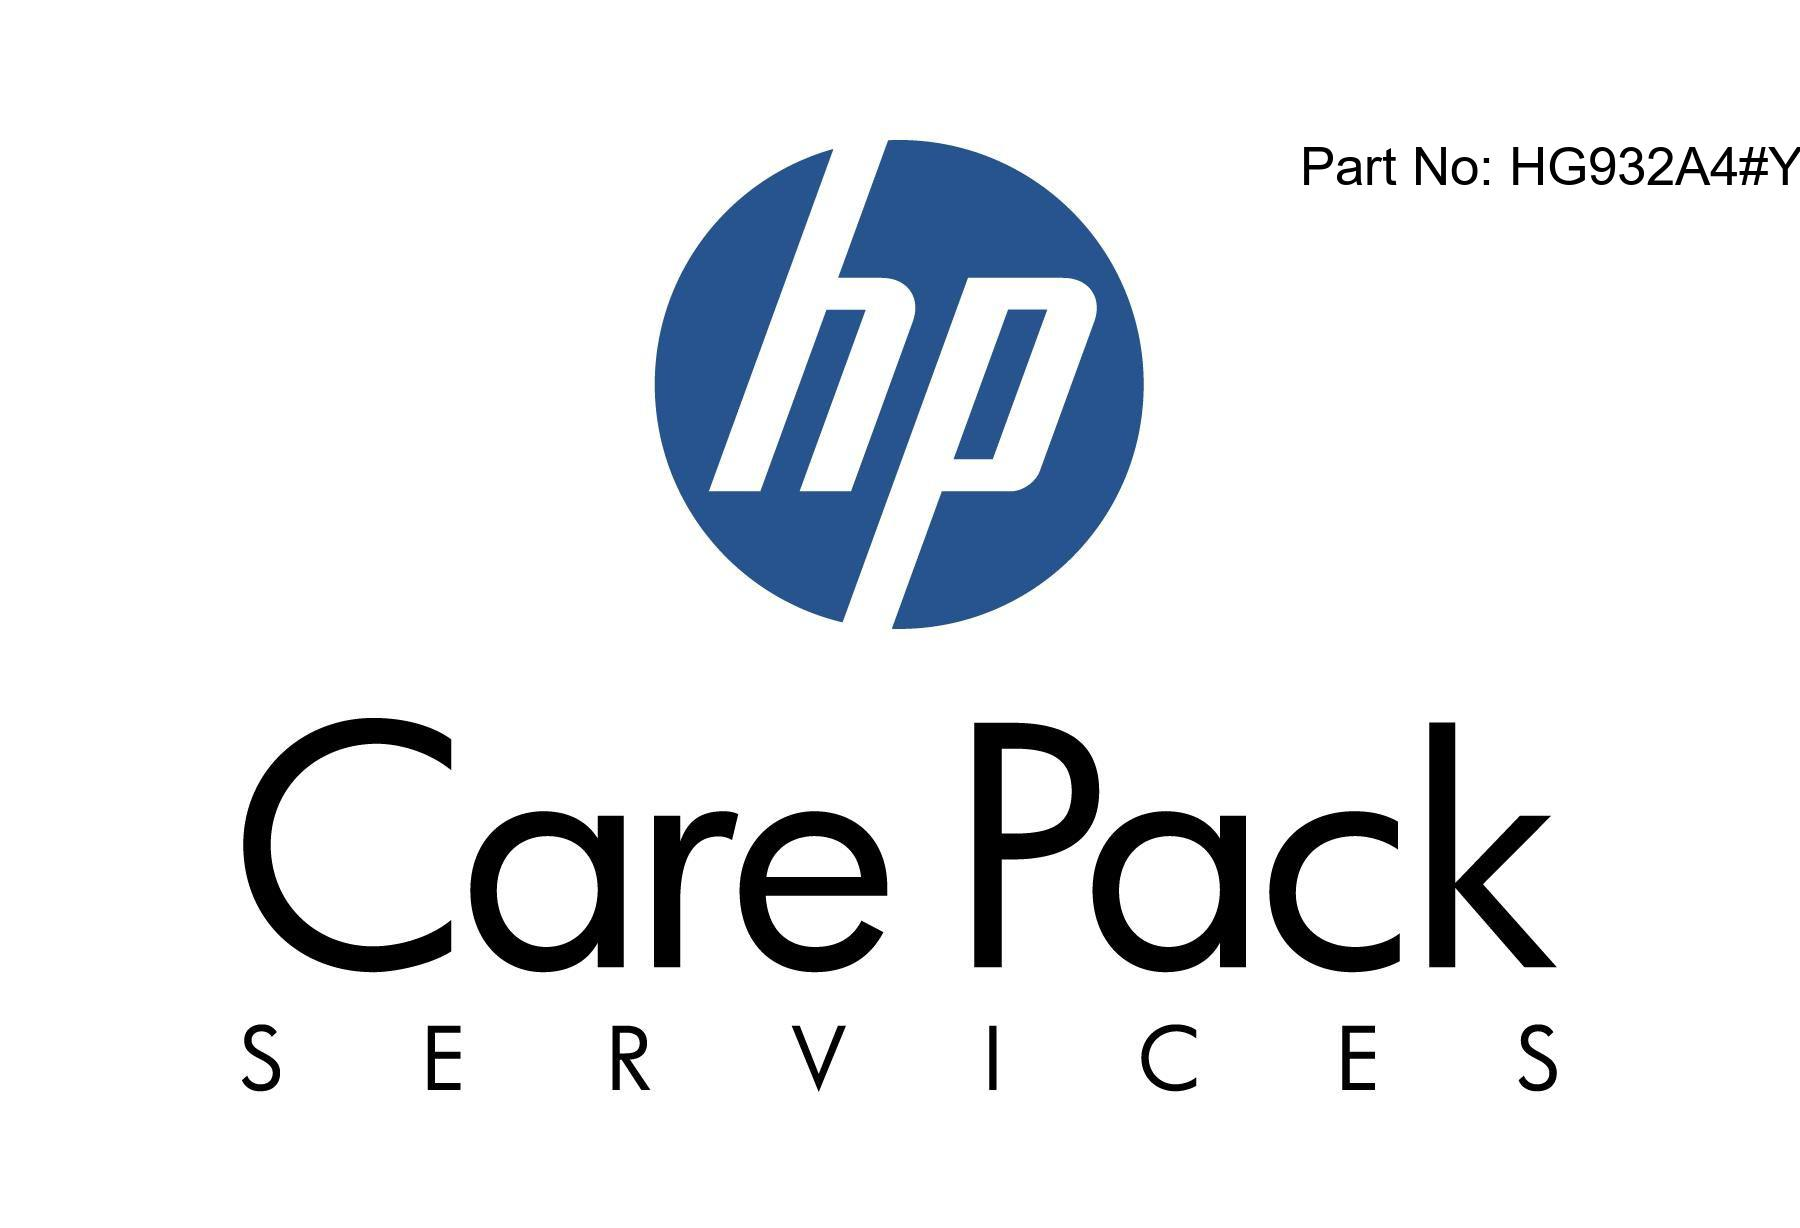 Critical Service with Defective Media Retention - Technical support - for HPE 3PAR 8440 Operating System Suite - 8 drives - phone consulting - 4 years - 24x7